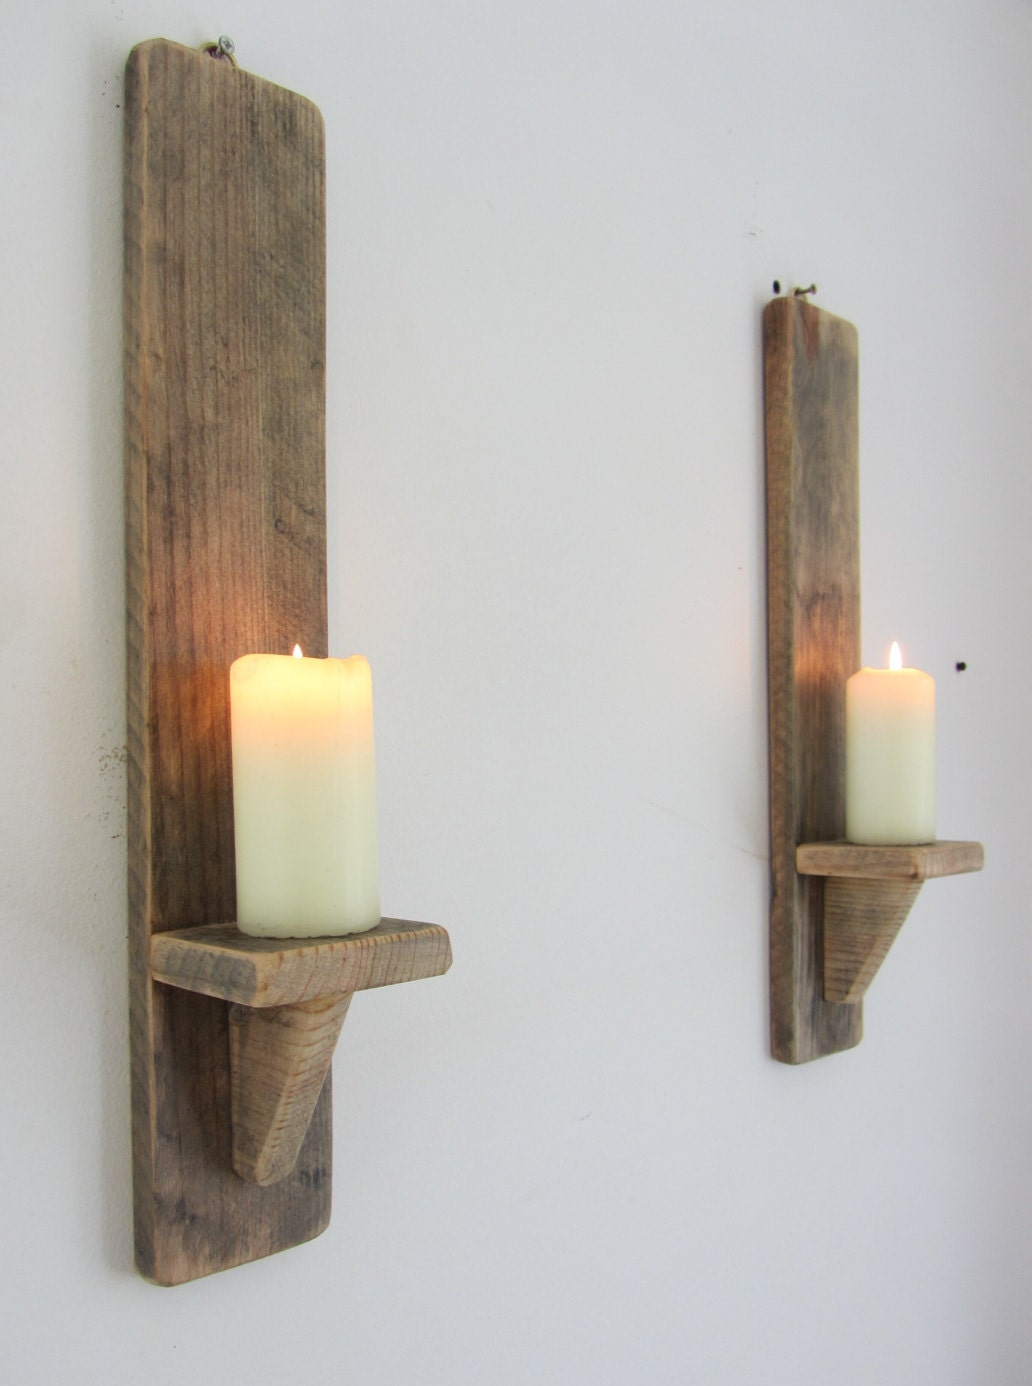 Wall Candle Sconces Wood : Pair rustic recycled pallet wood wall sconce candle holders